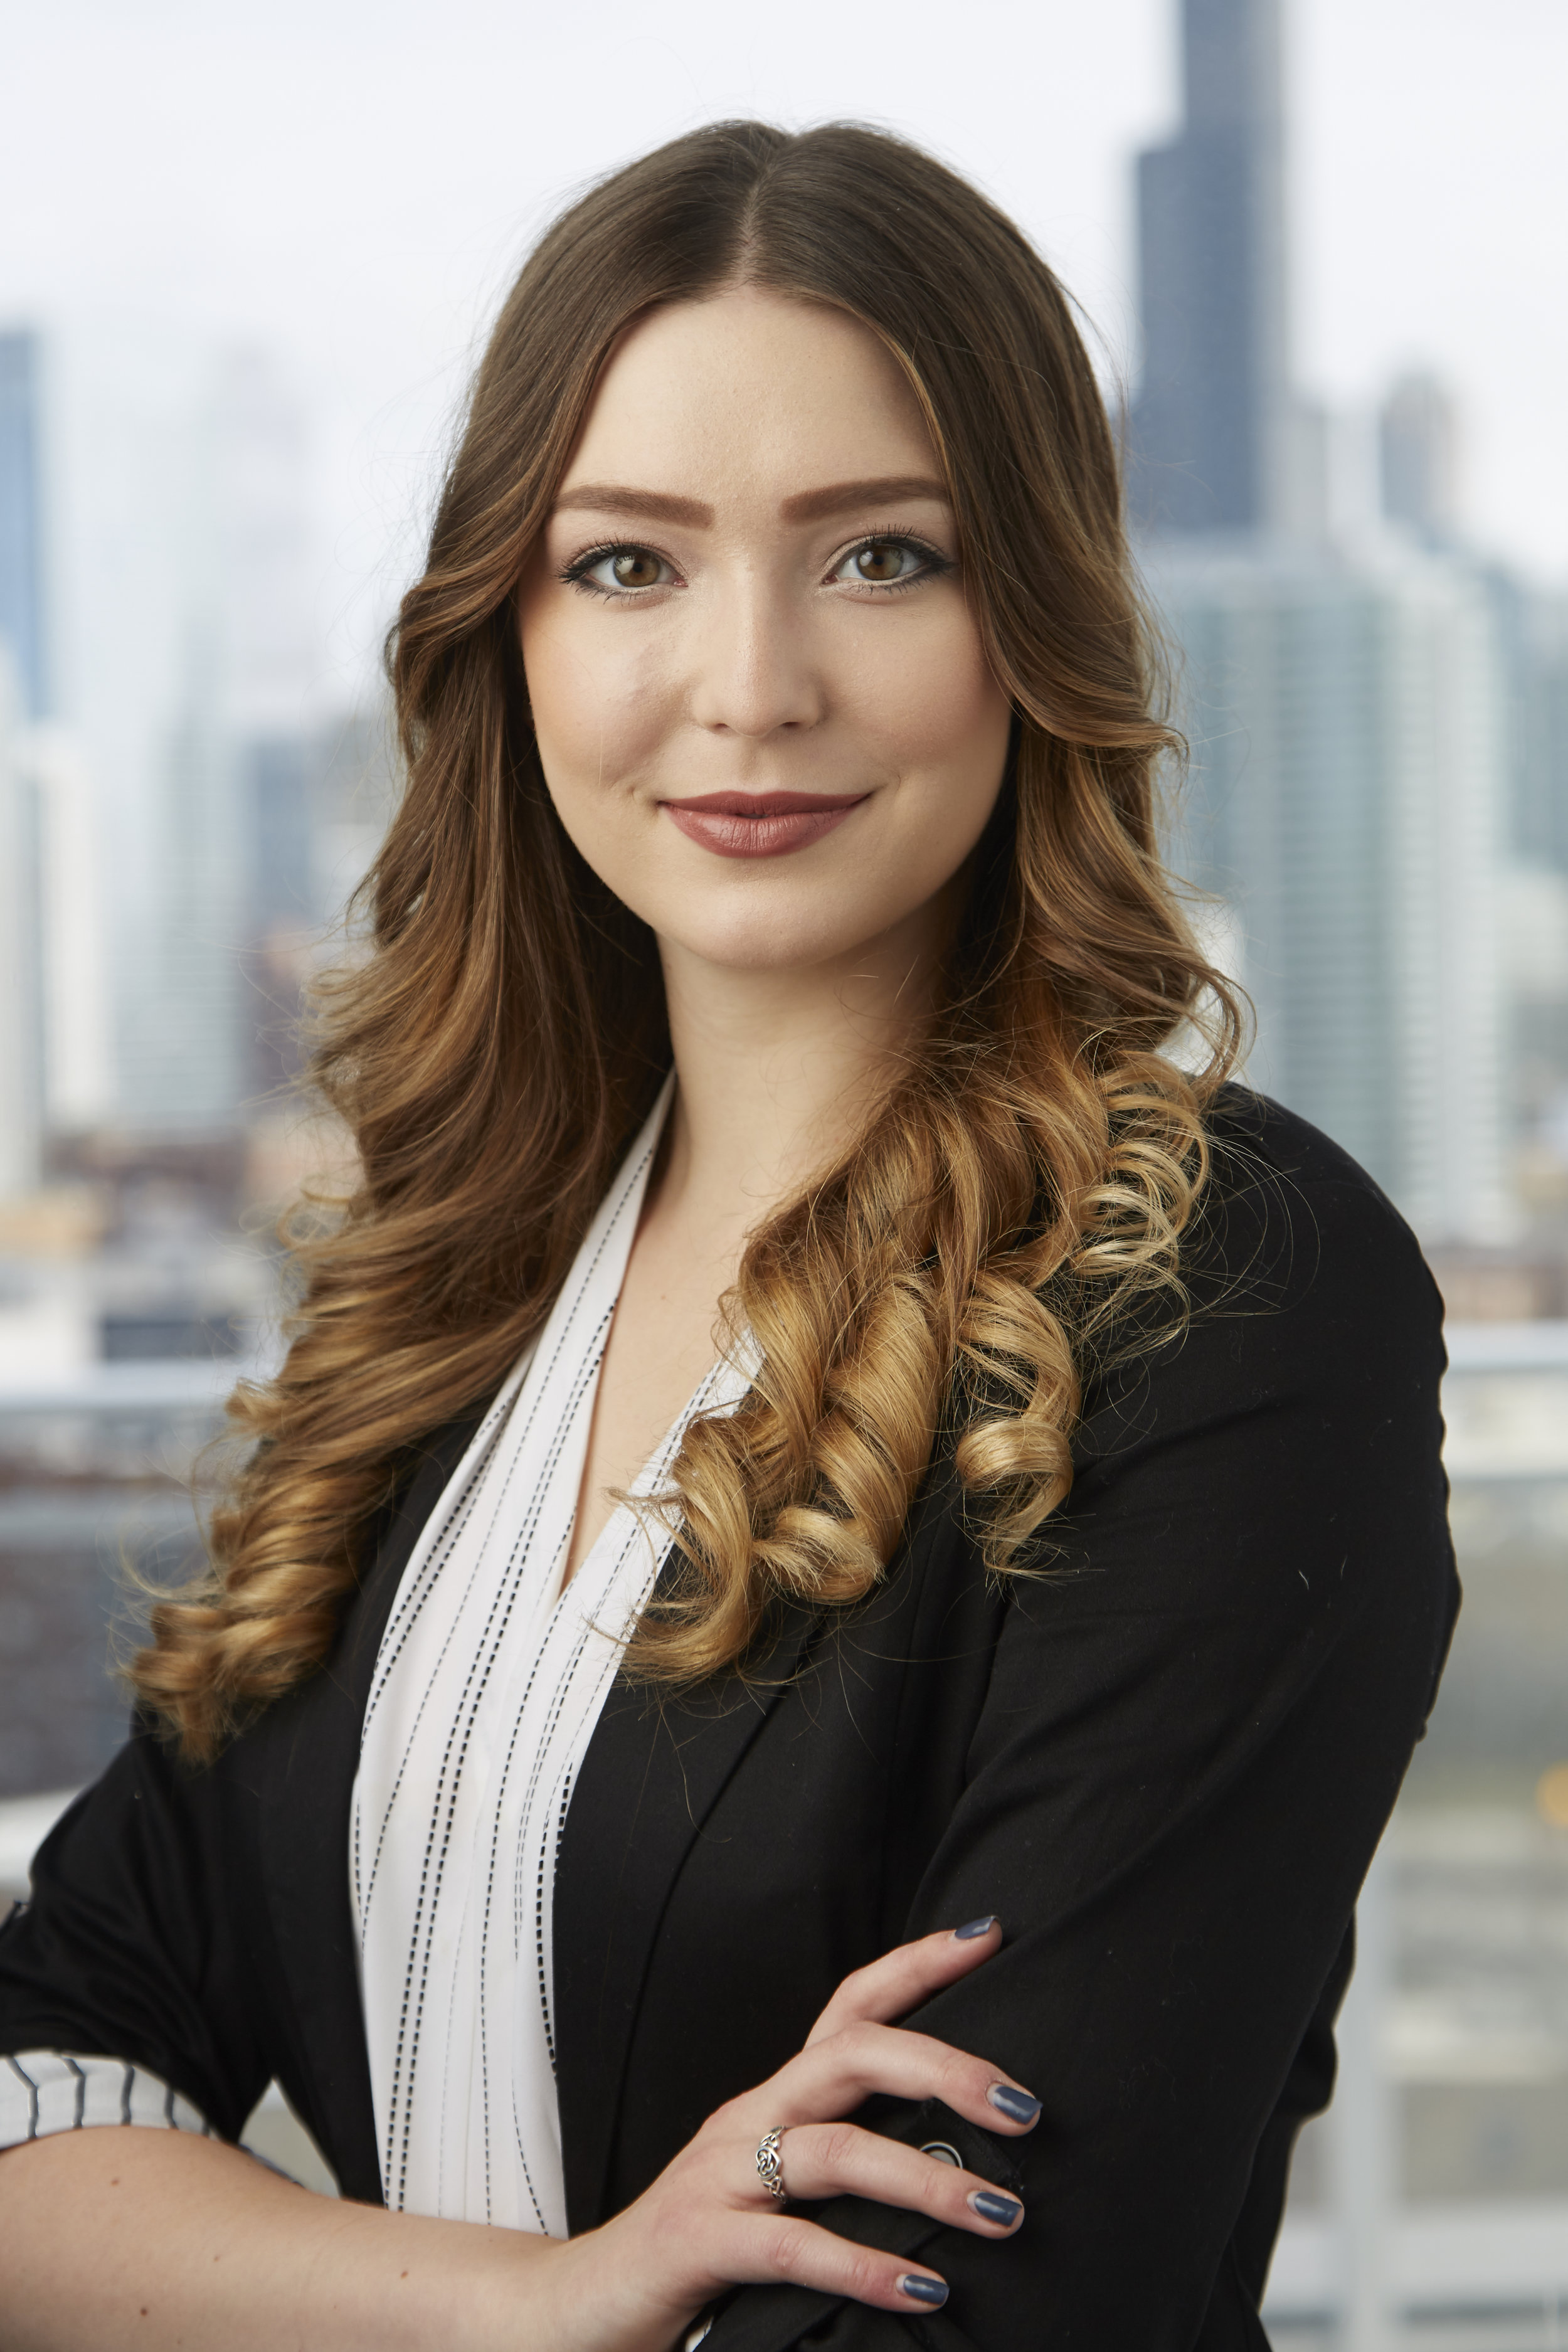 Jenni Hlebasko - Jenni started her career in real estate in 2017 and hasn't looked back! She lives in Lincoln Park and with friends all over the city, is very familiar with several of the popular neighborhoods. Her great personality and organizational skills make her a delight to work with and she is certainly on track to be awarded